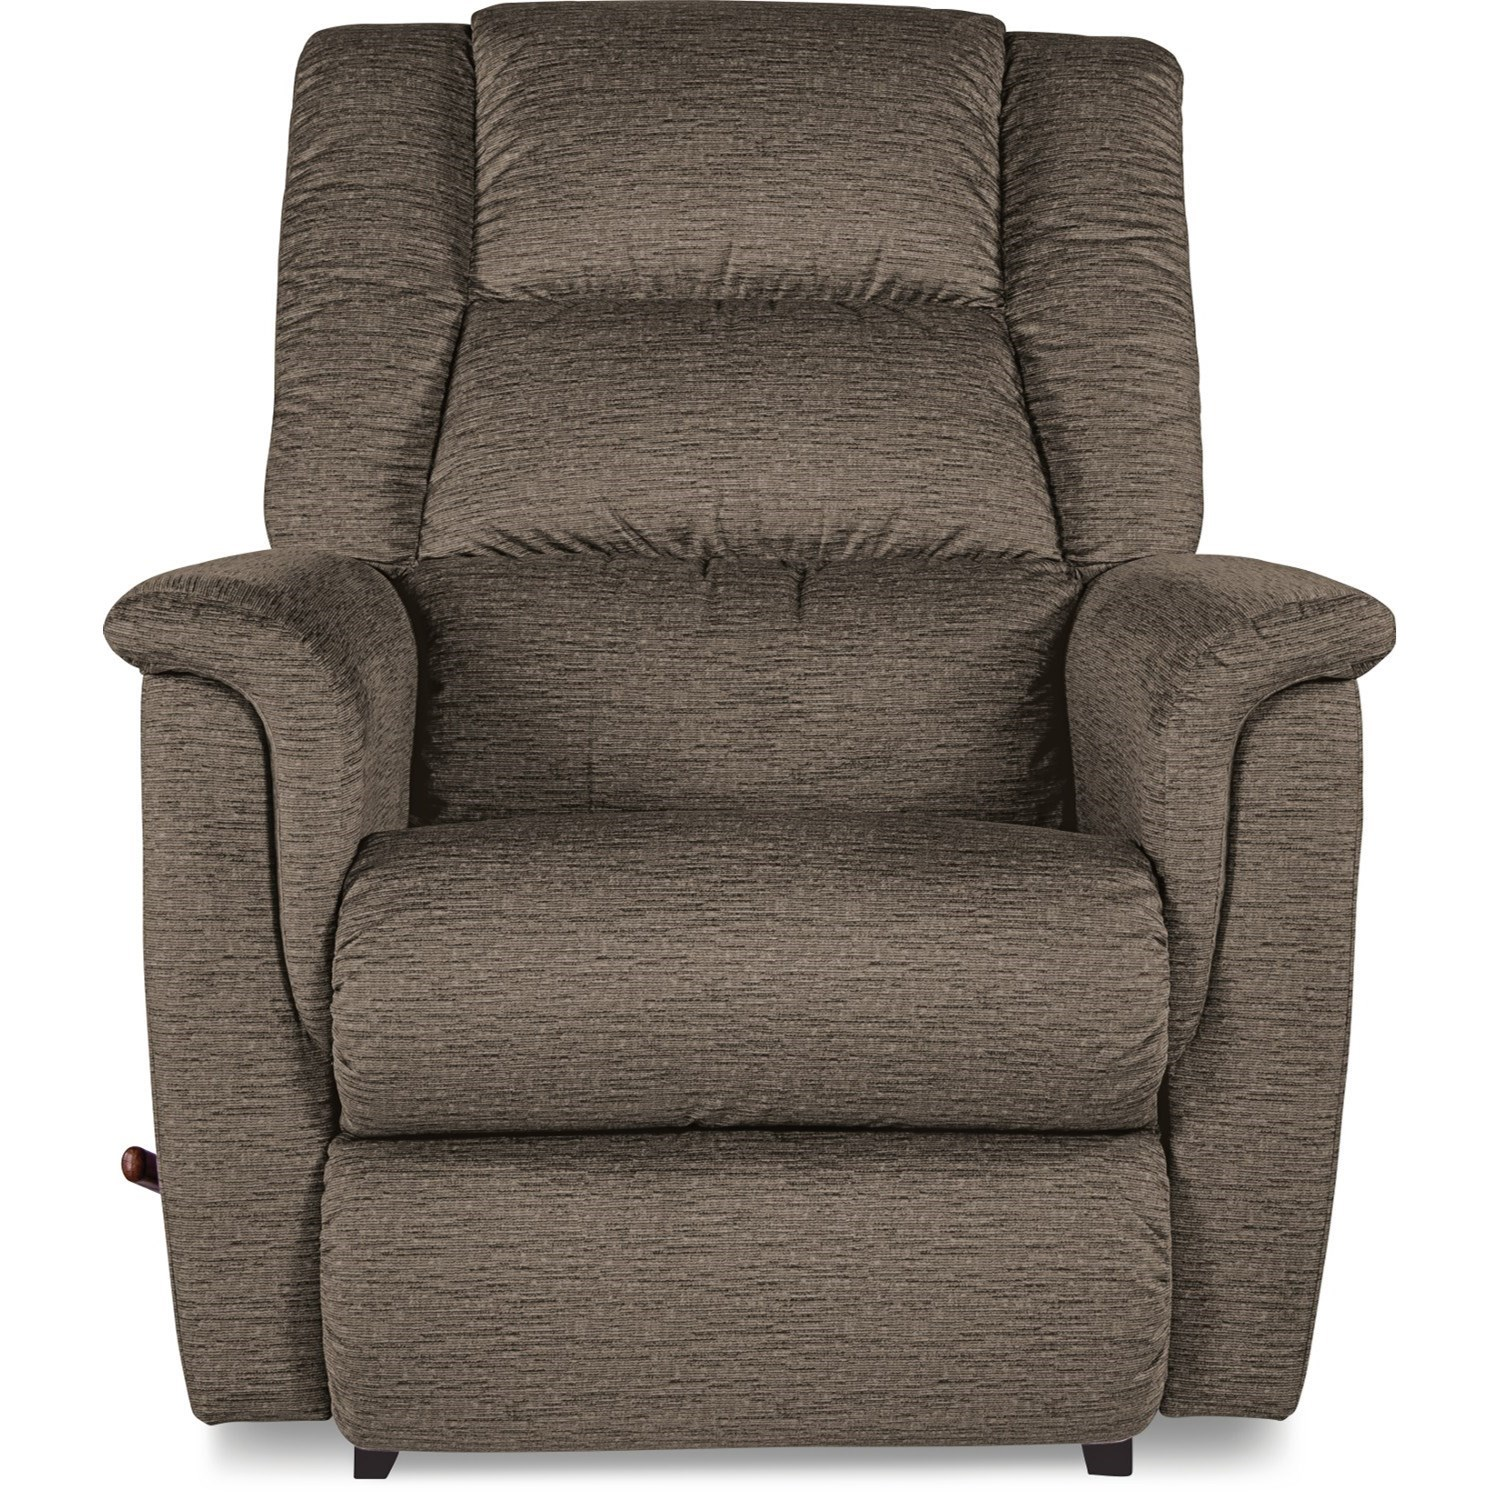 Murray Power Wall Saver Recliner by La-Z-Boy at Fisher Home Furnishings